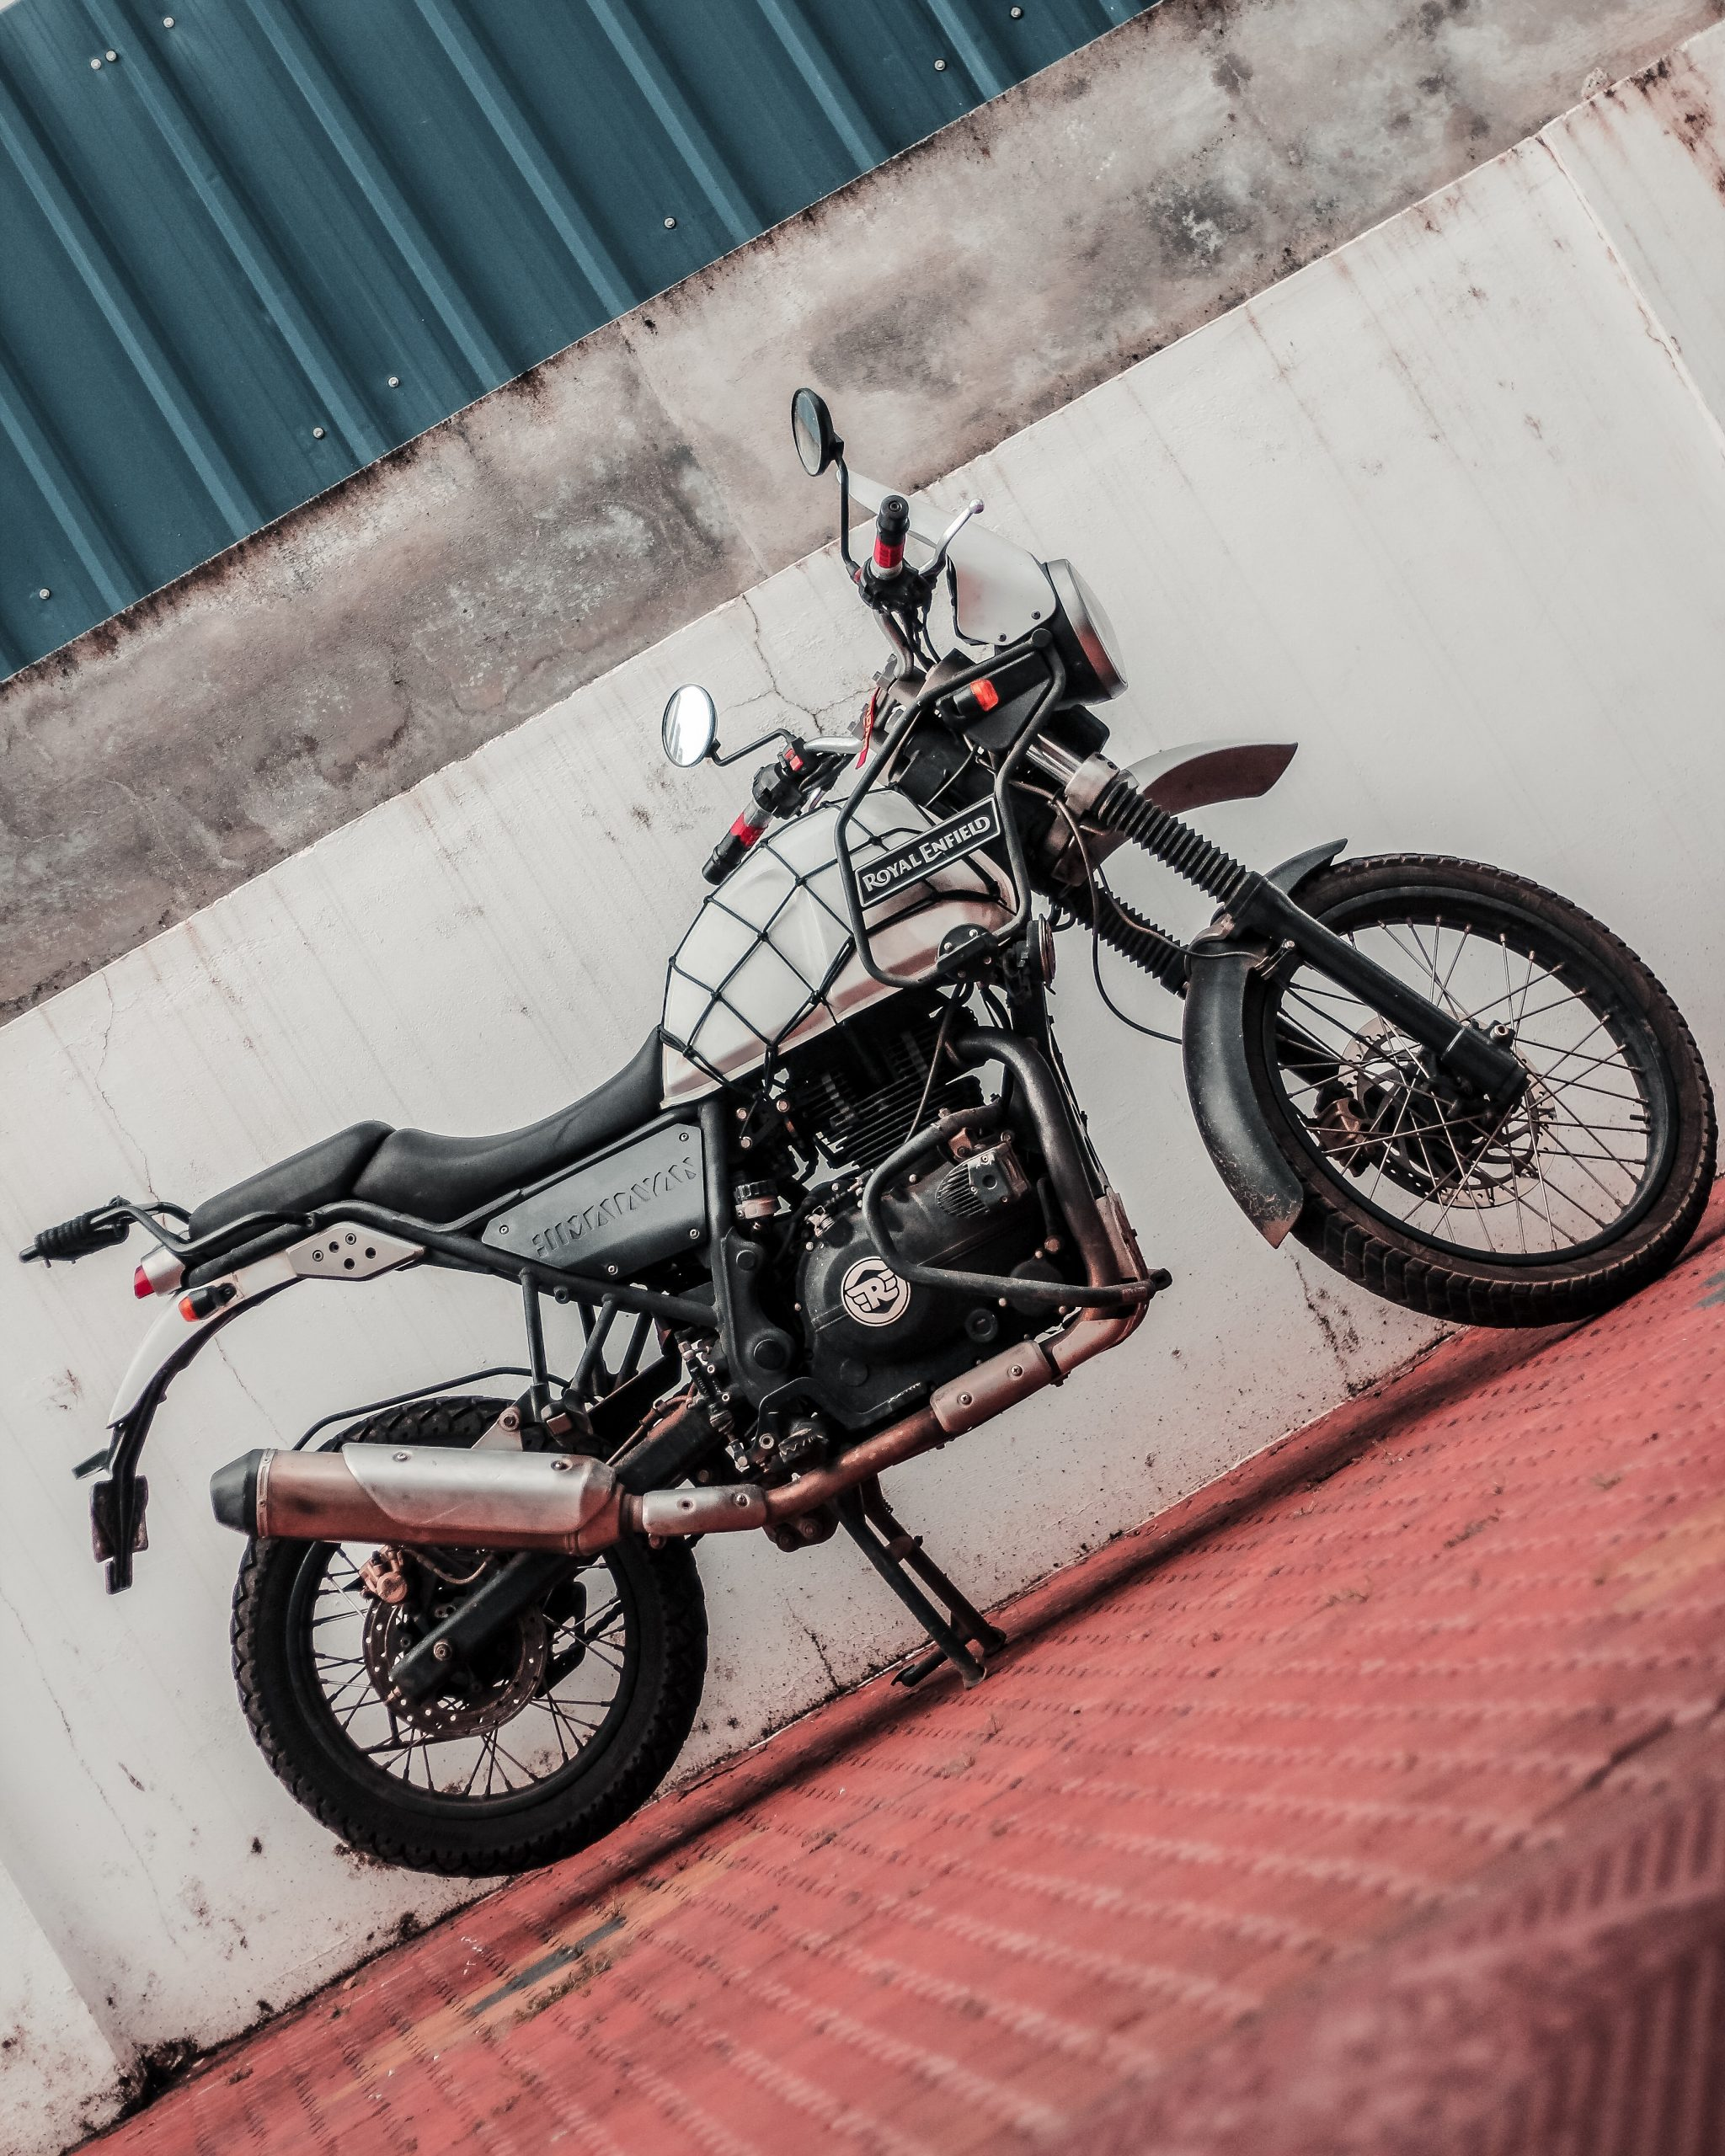 Motorcycle parked in front of the wall